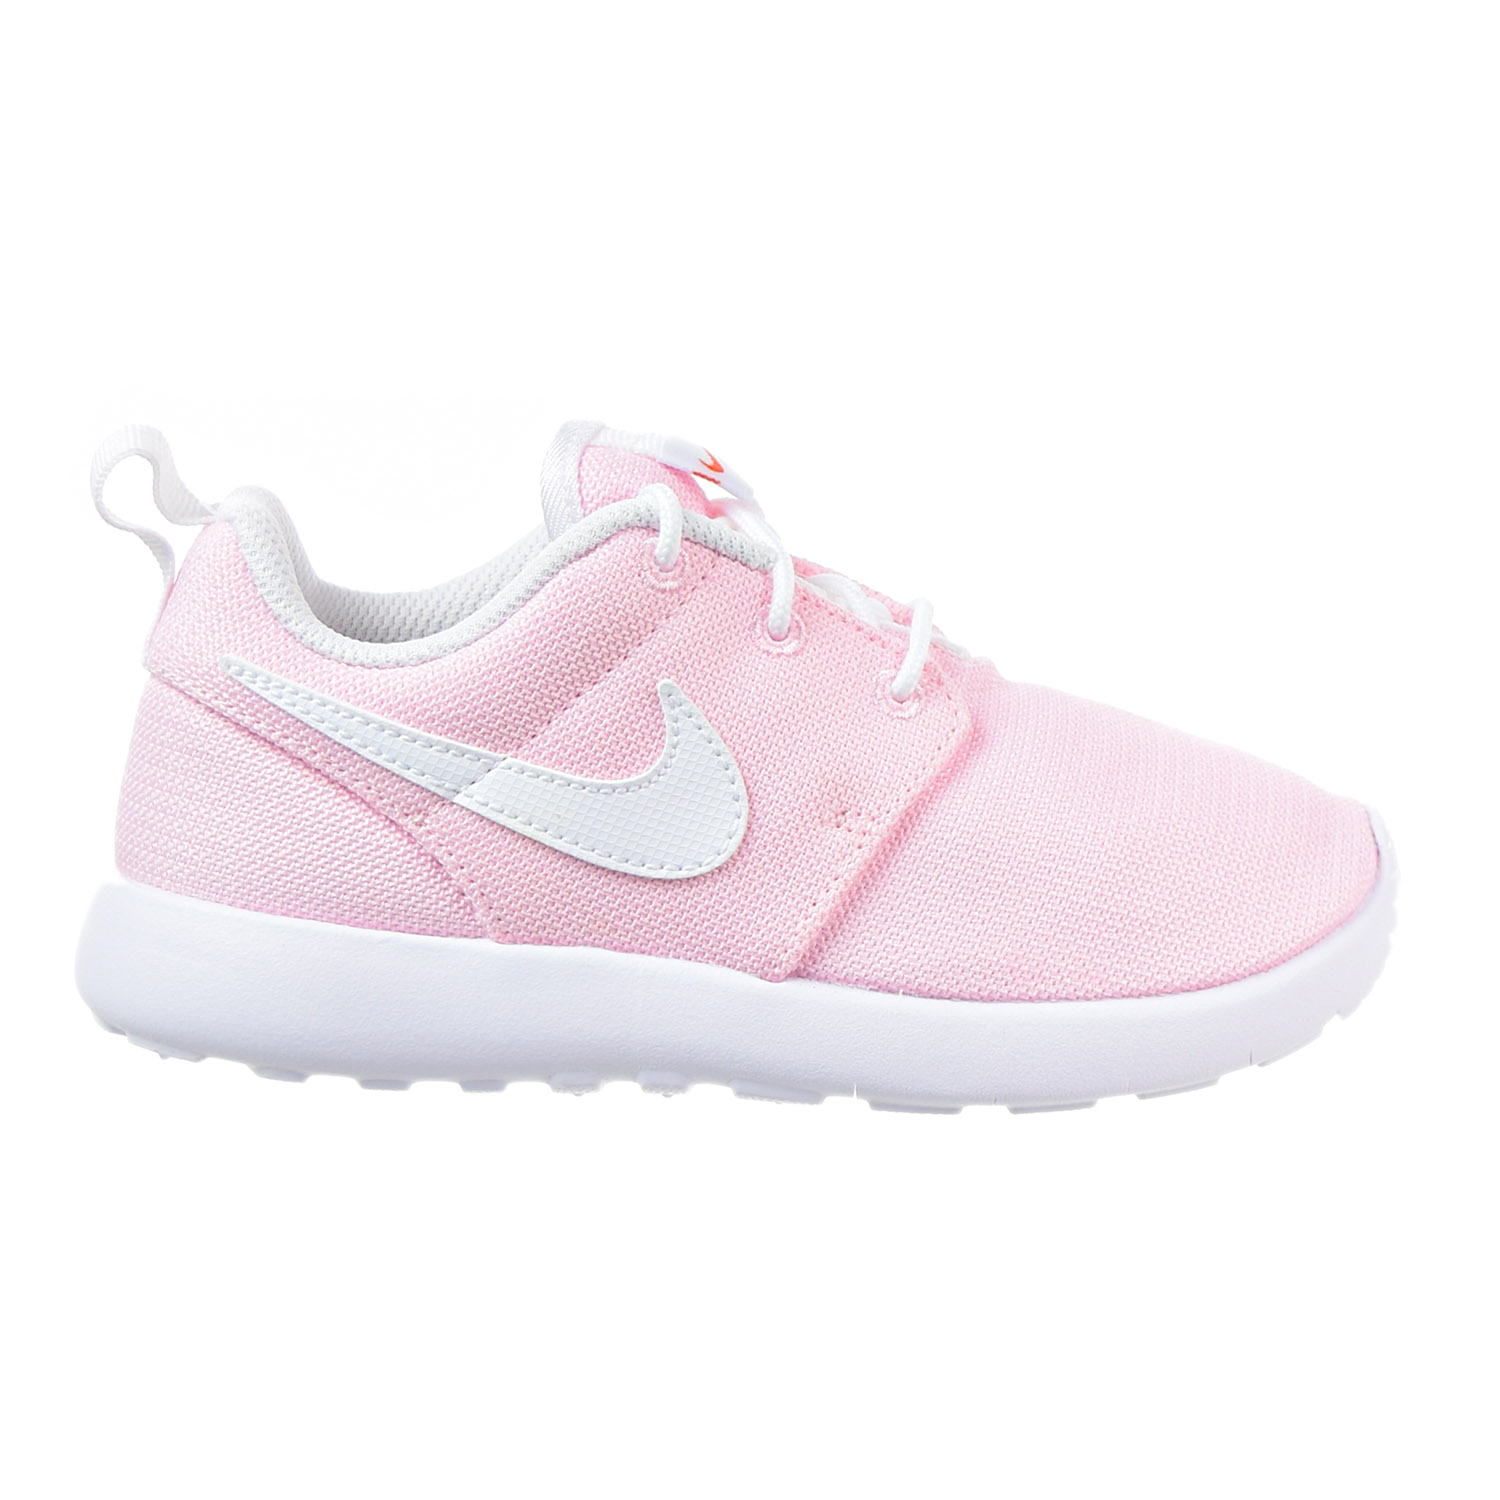 official photos 5a0d7 3d308 ... inexpensive nike roshe one little kids shoes prism pink white 749422  613 walmart cad83 0c0df